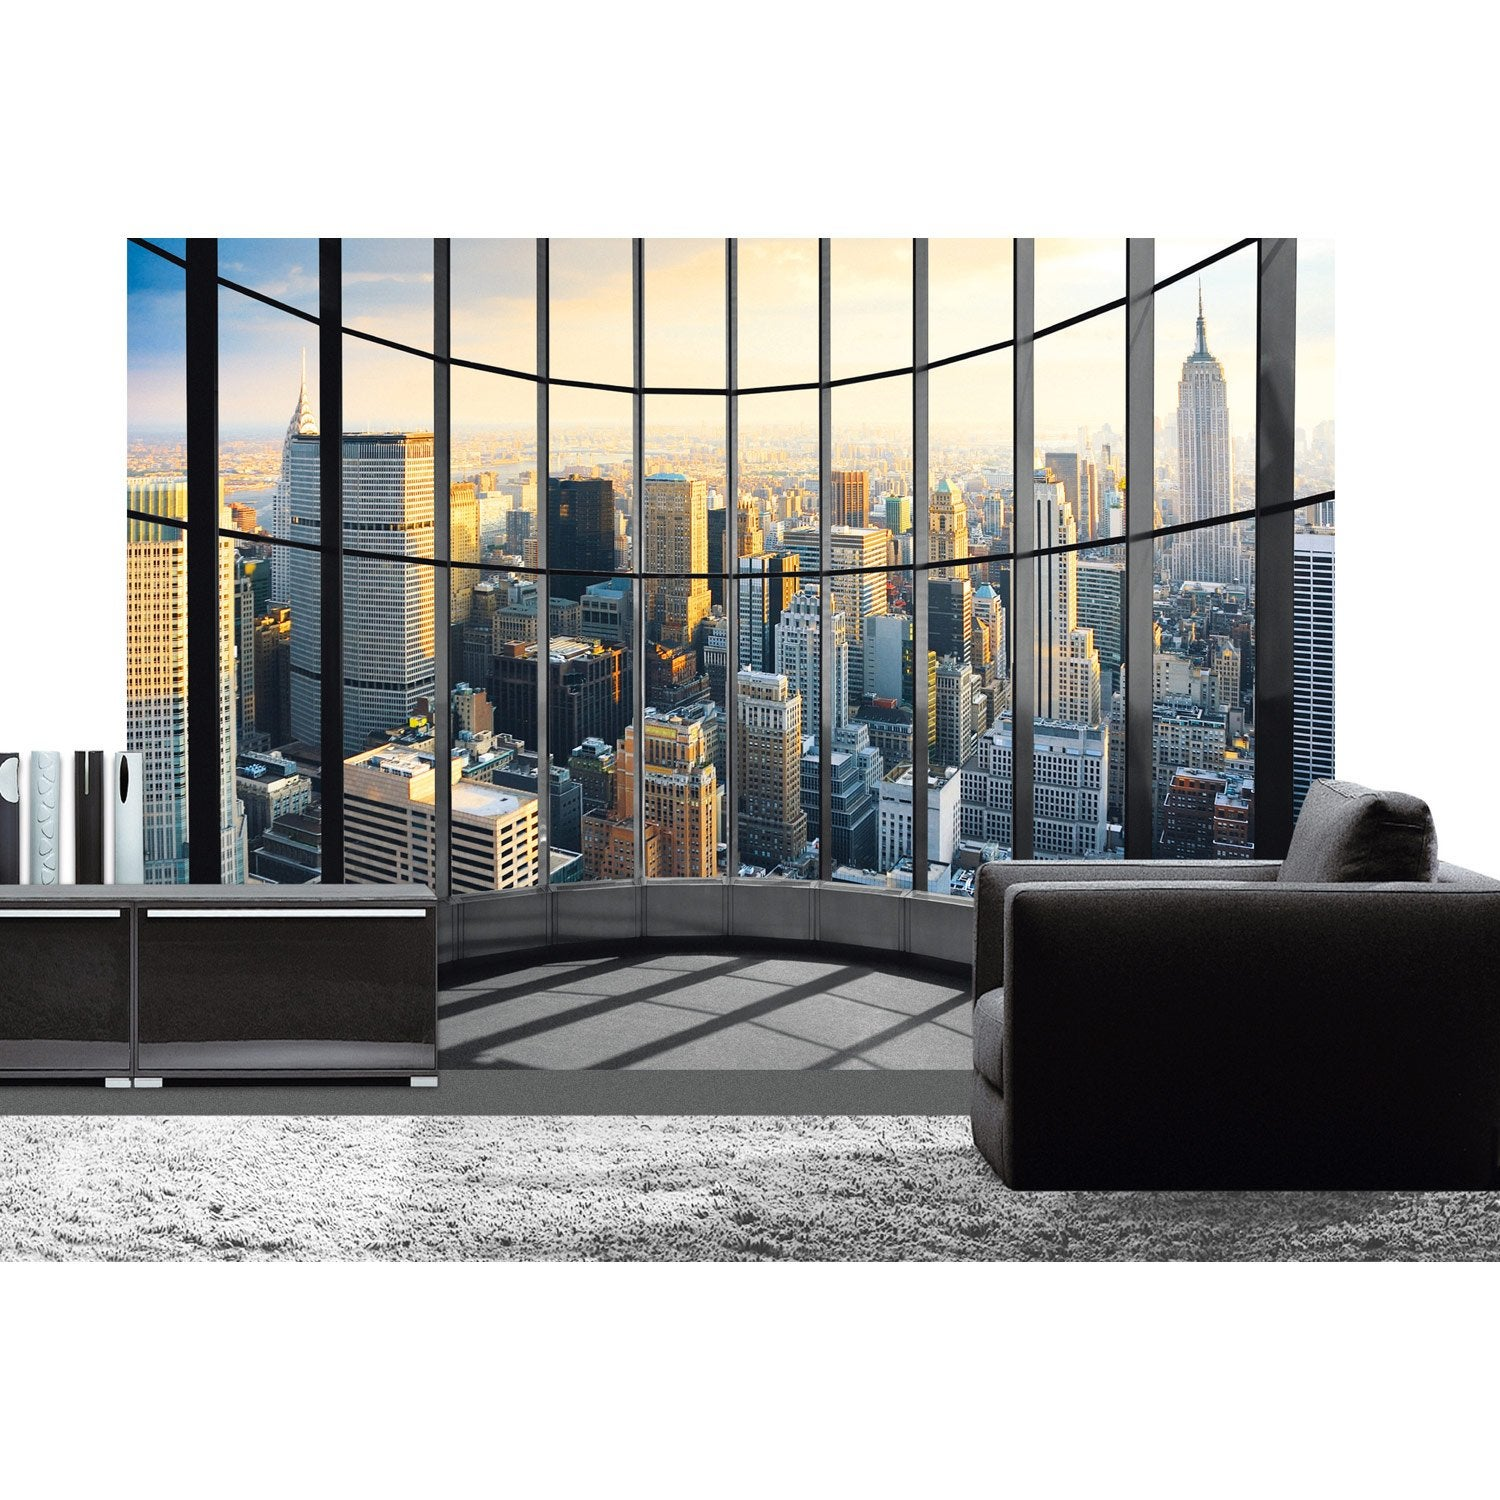 Poster xxl de mur office view deco wall x cm - Deco murale new york ...